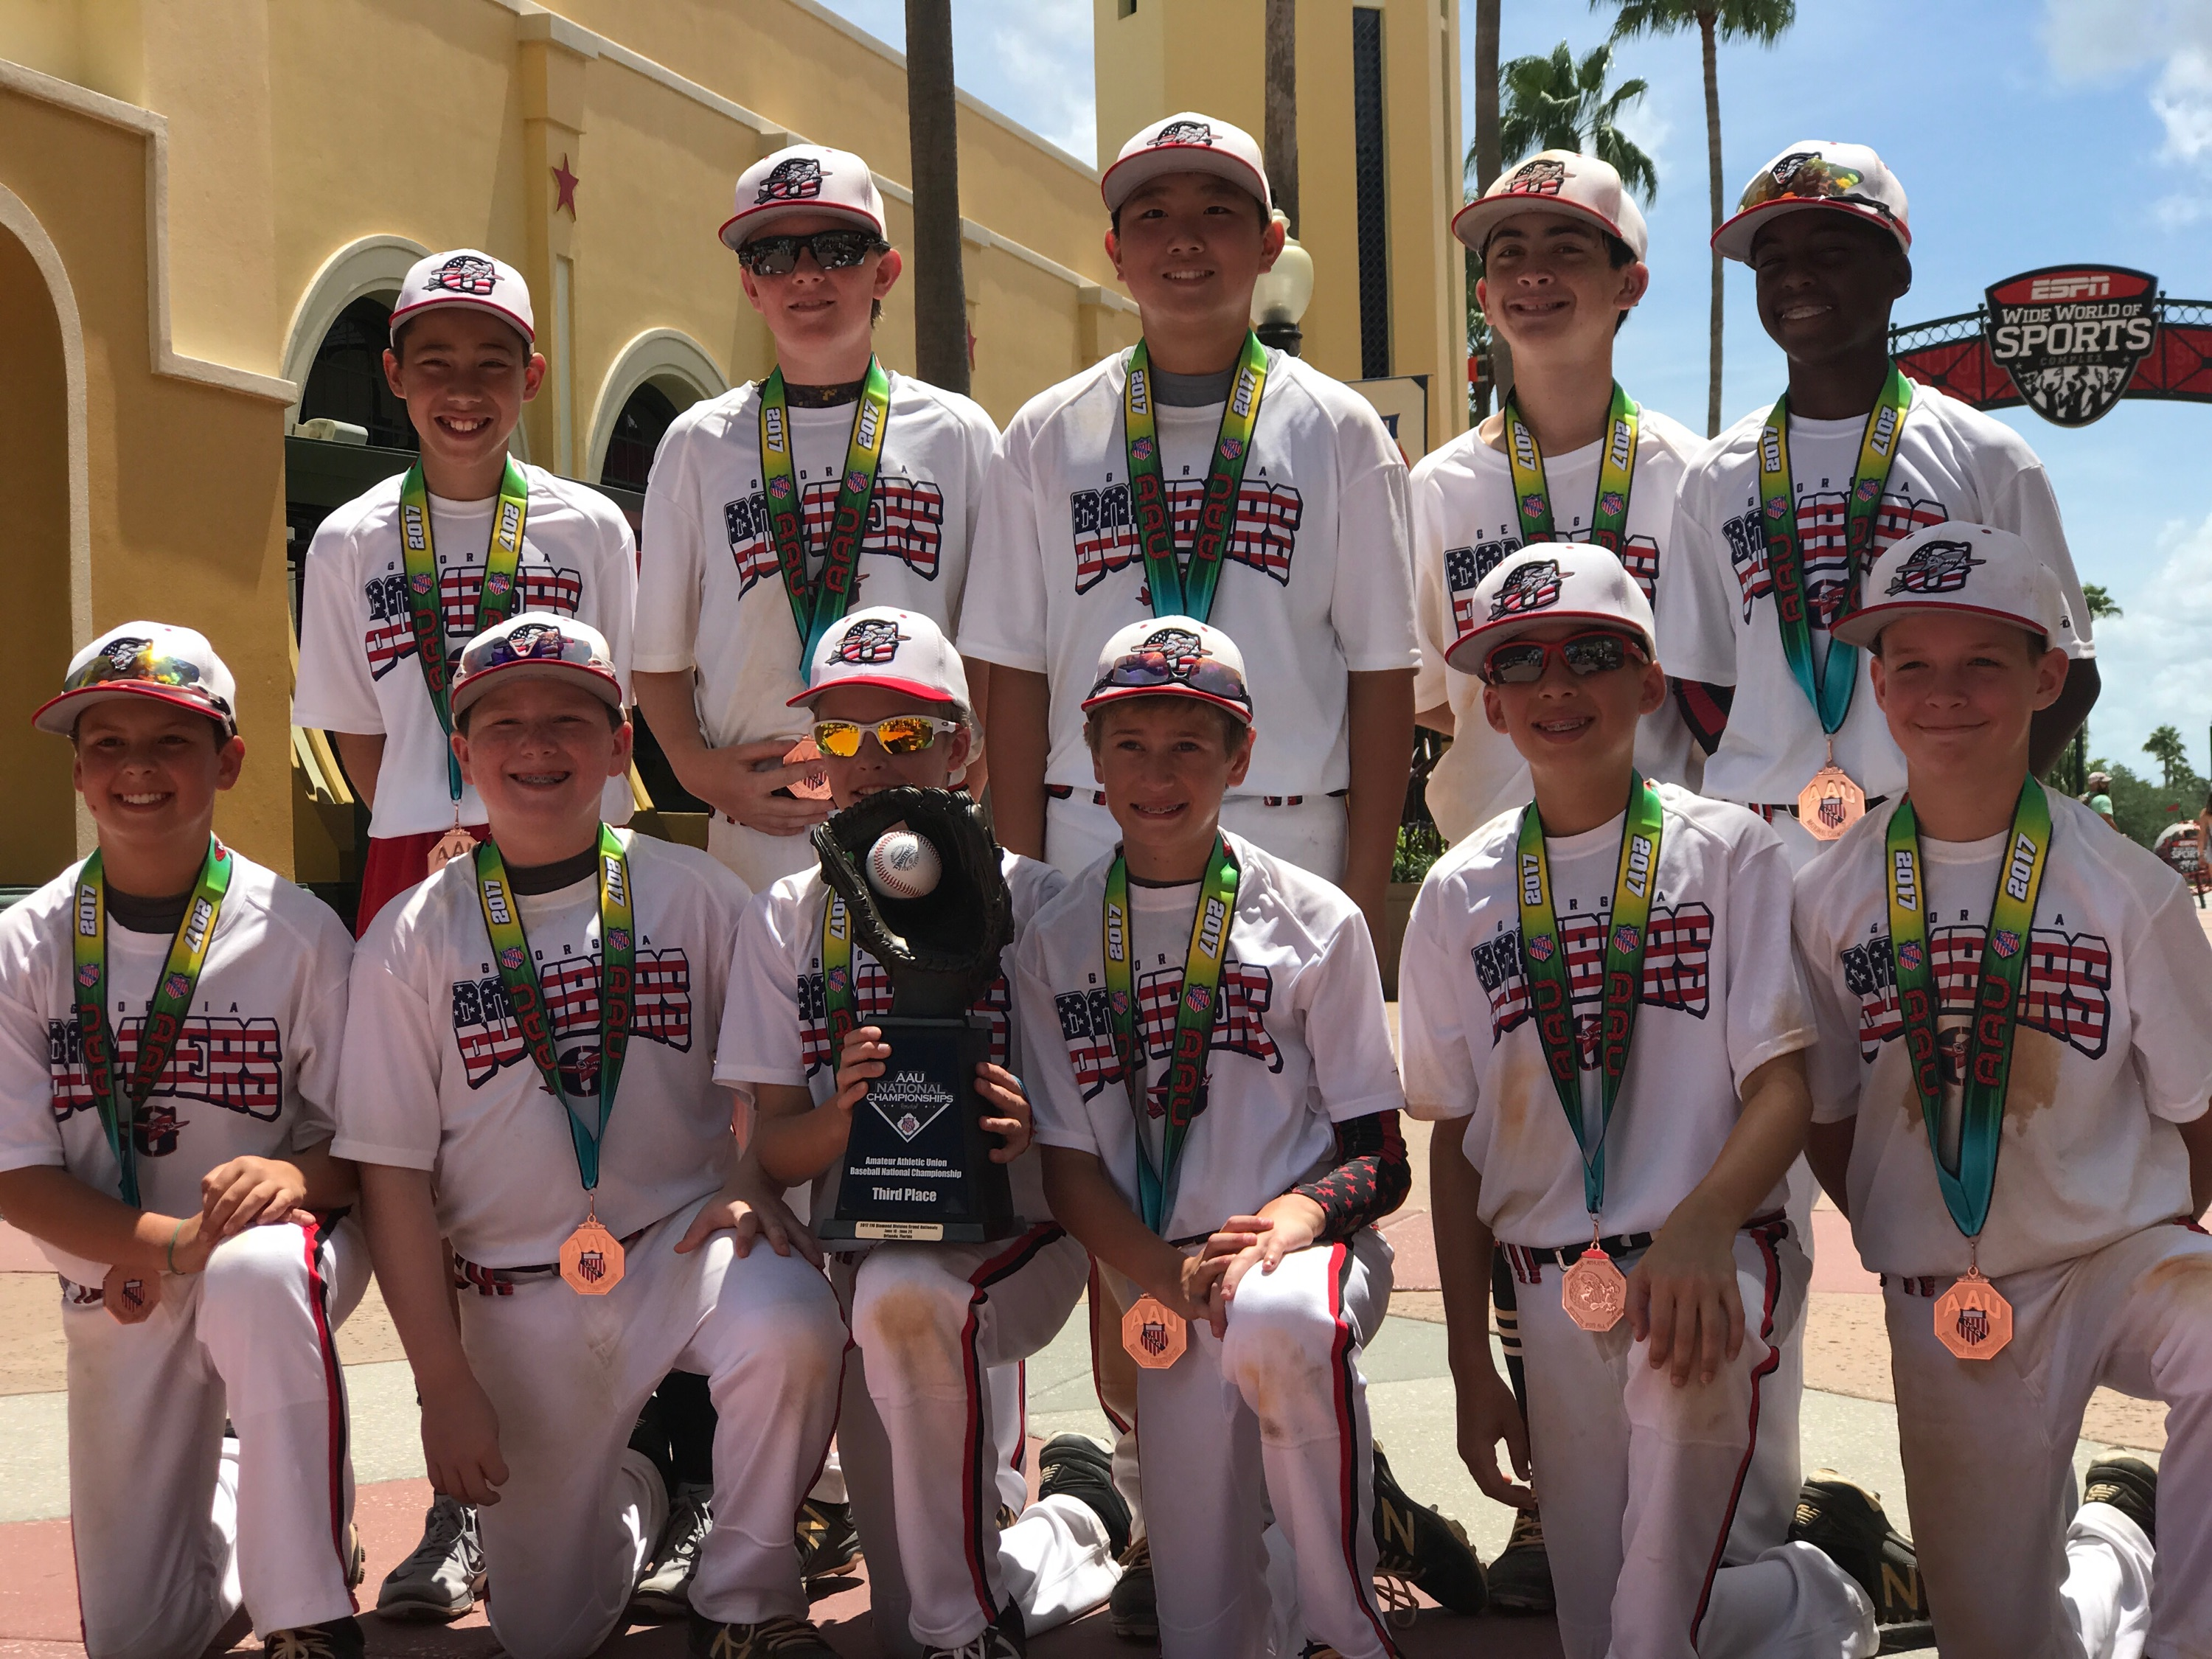 Bombers 11U (Lazzara) takes 3rd at AAU Nationals